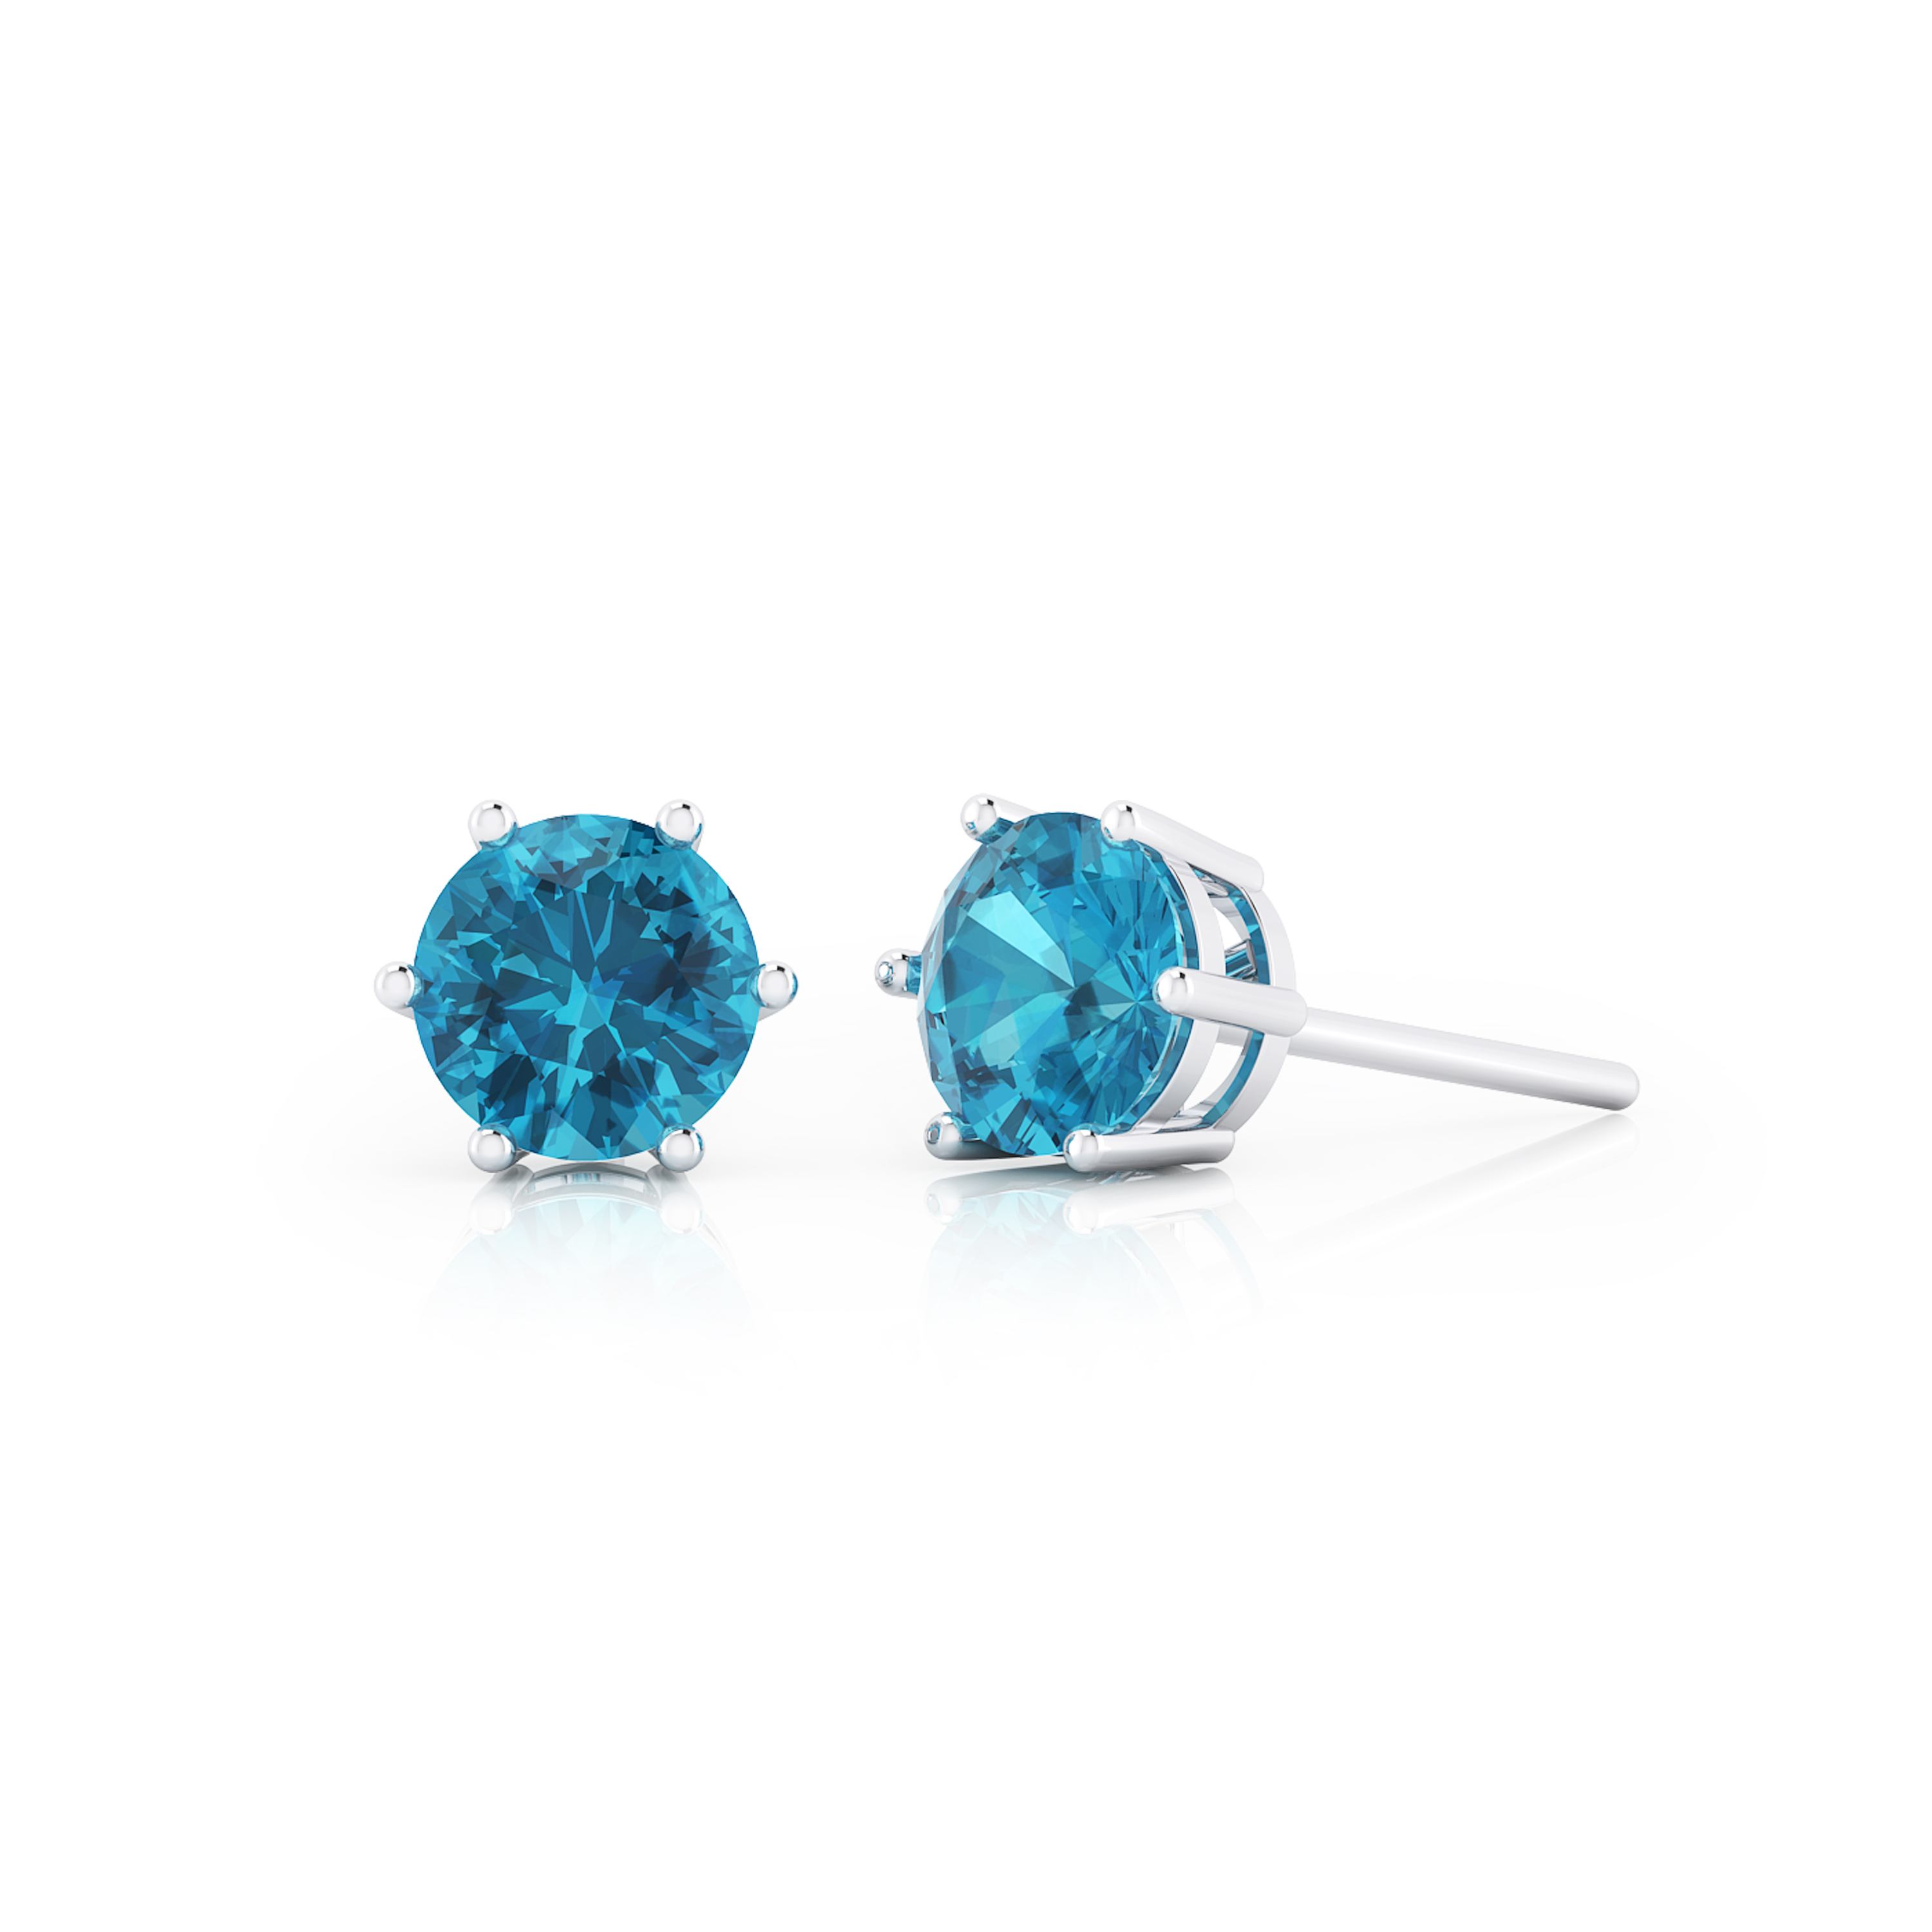 Silver earrings with blue topaz